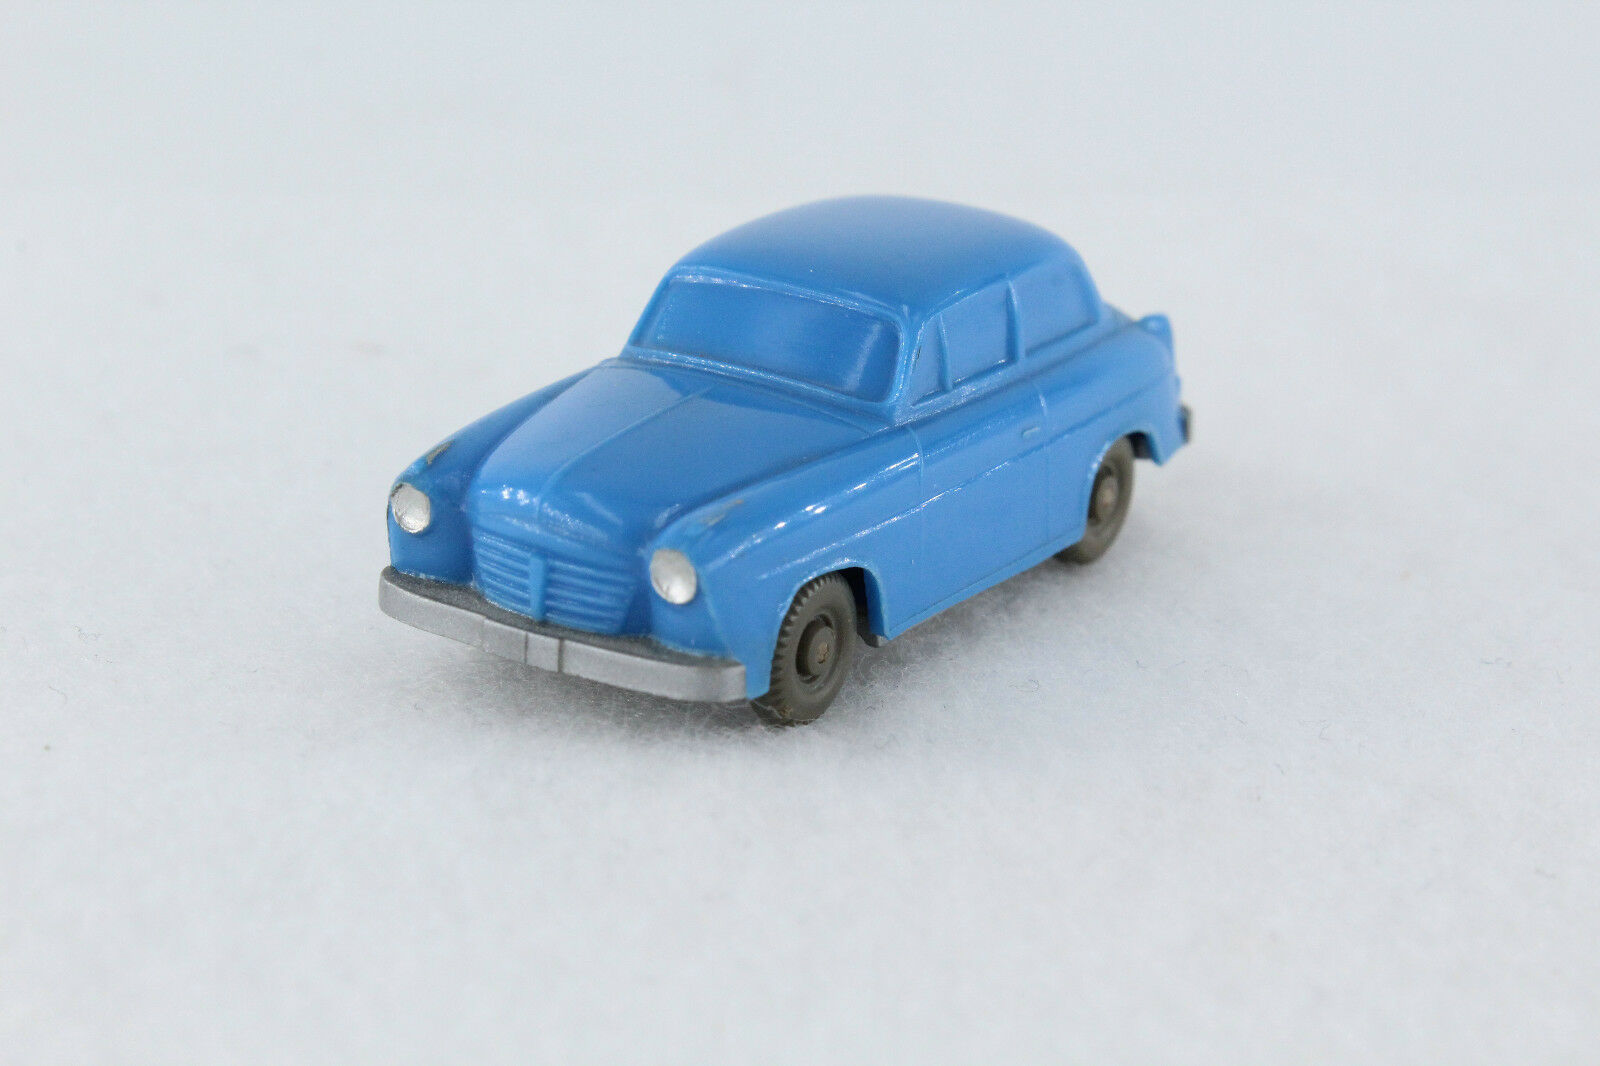 A.S.S WIKING UNVERGLAST GOLIATH GP 700 BABYblue 1957 GK 44 1D CS 131 1A 1.W TOP